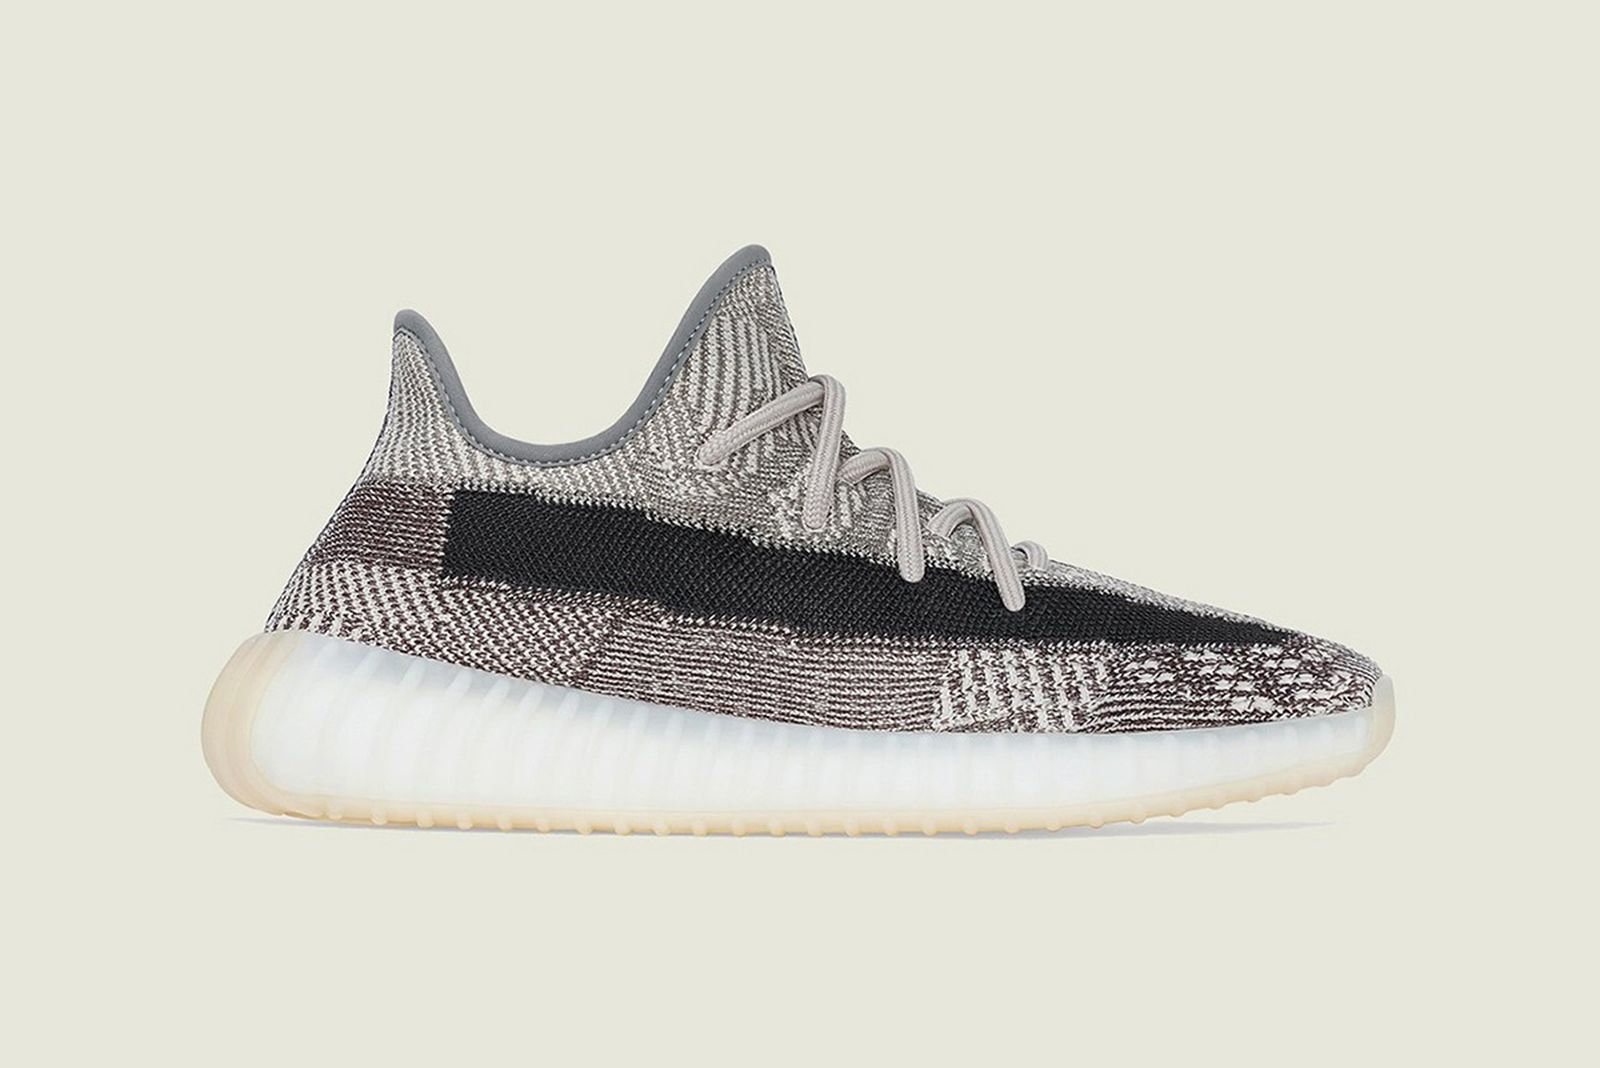 Adidas Yeezy Boost 350 V2 Zyon Official Images Release Info